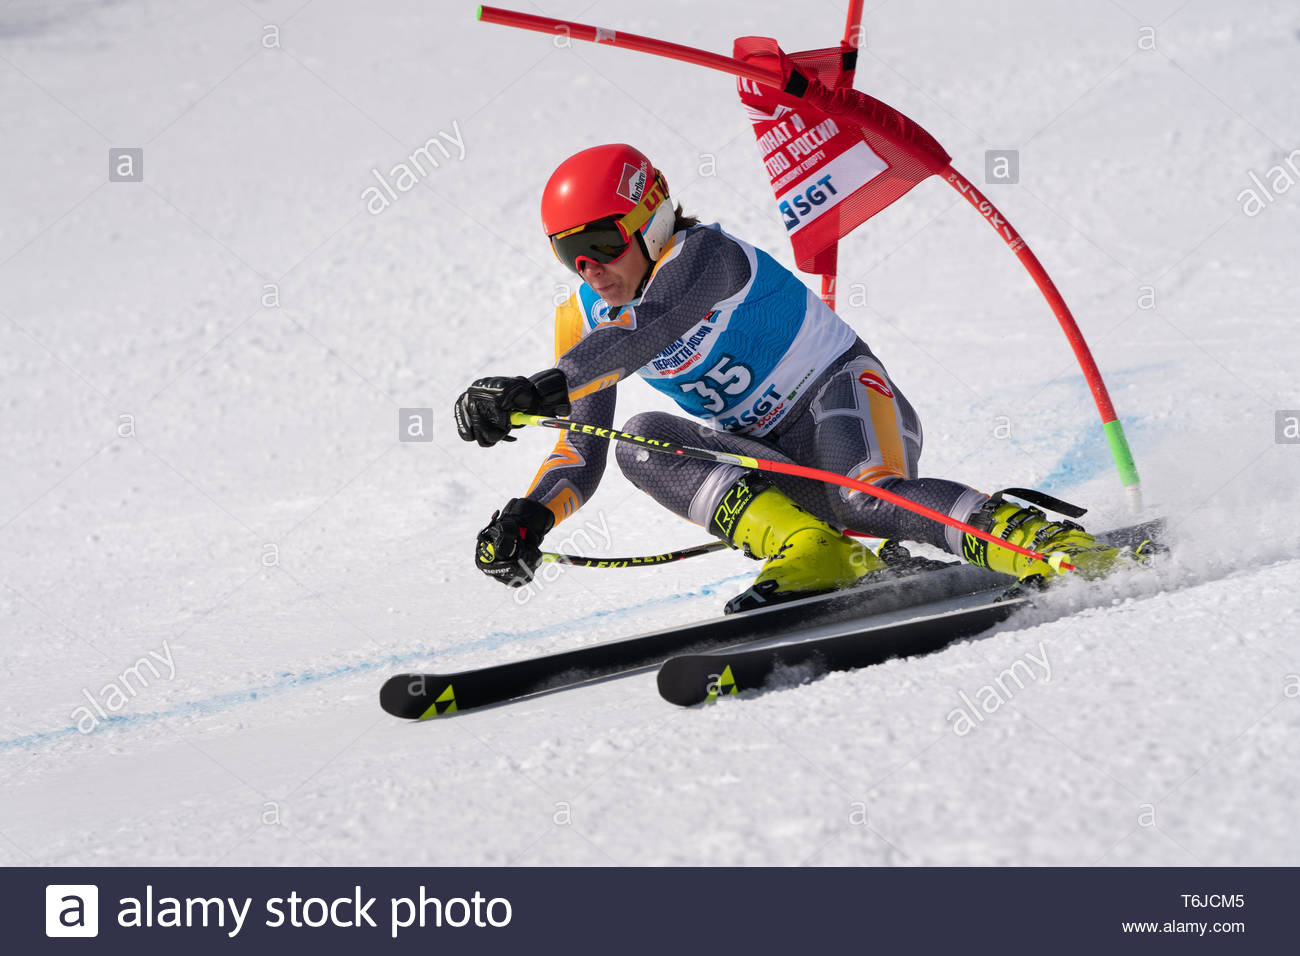 KAMCHATKA PENINSULA, RUSSIA - APR 1, 2019: Russian Alpine Skiing Cup, International Ski Federation (FIS) Championship, giant slalom. Mountain skier Da - Stock Image